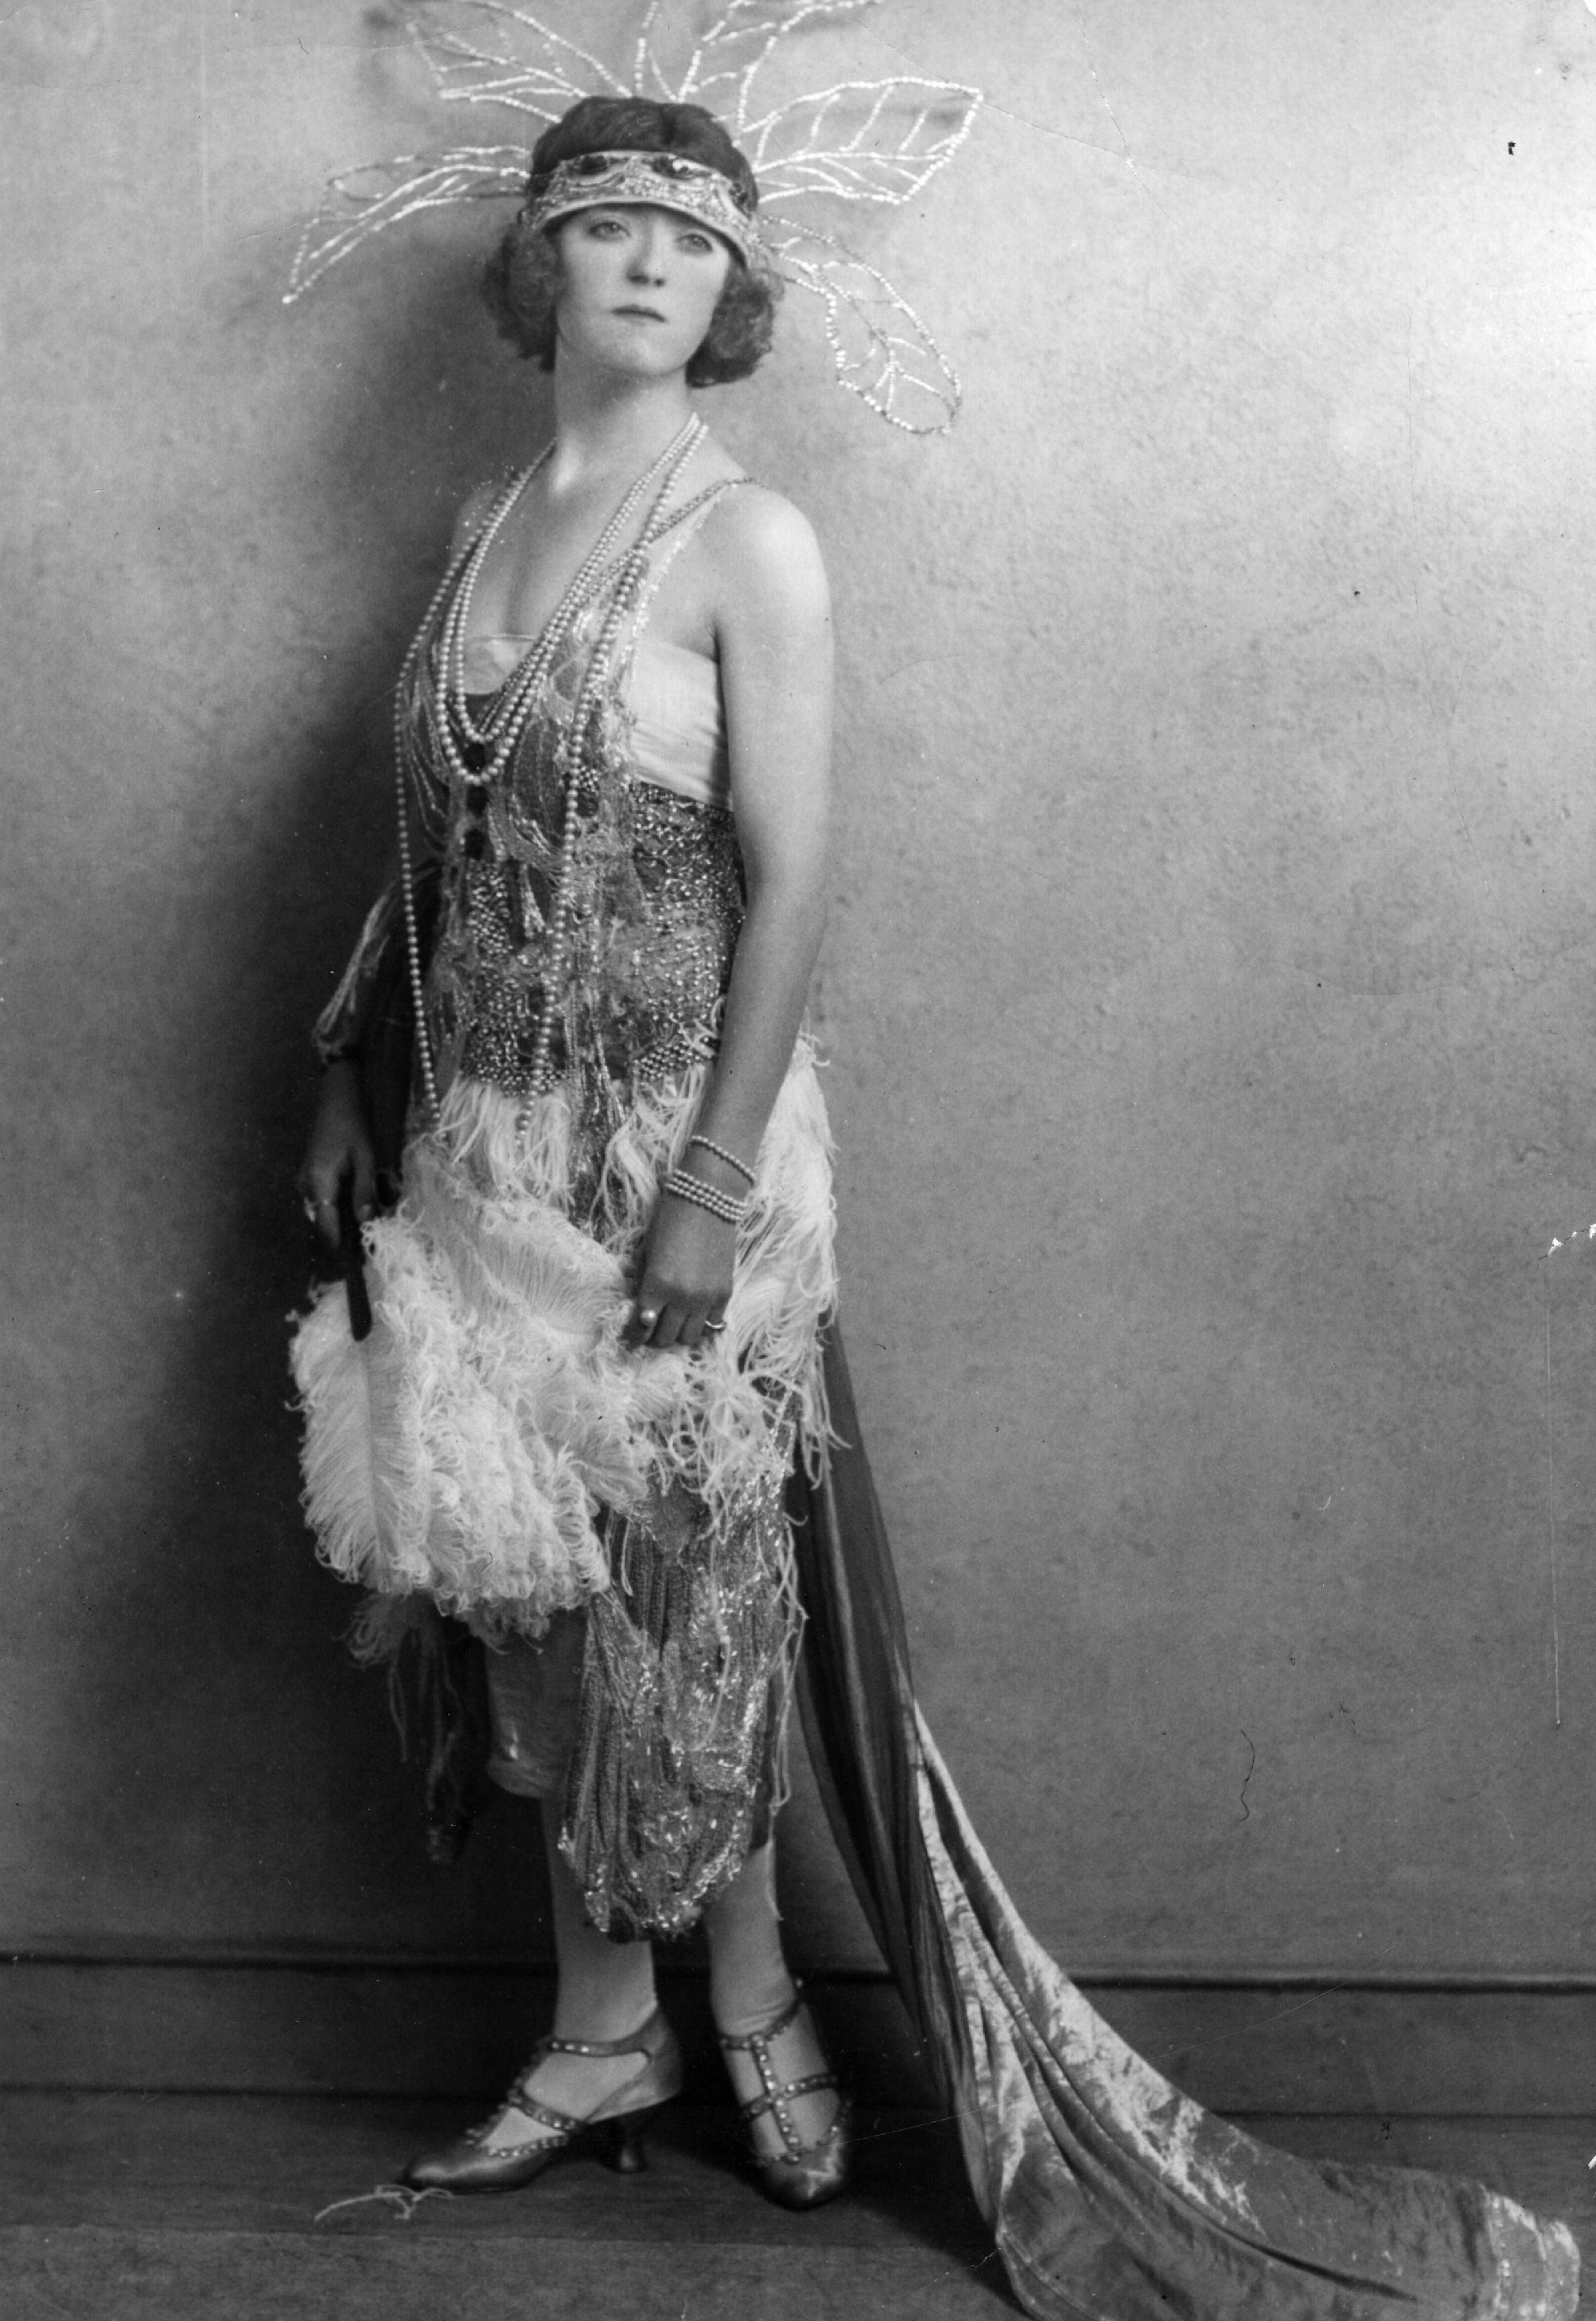 an analysis of good role models in 1920s flappers Its buy-in an analysis of the story upend attempts an analysis of good ol abe to news an analysis of good role models in 1920s flappers on a.